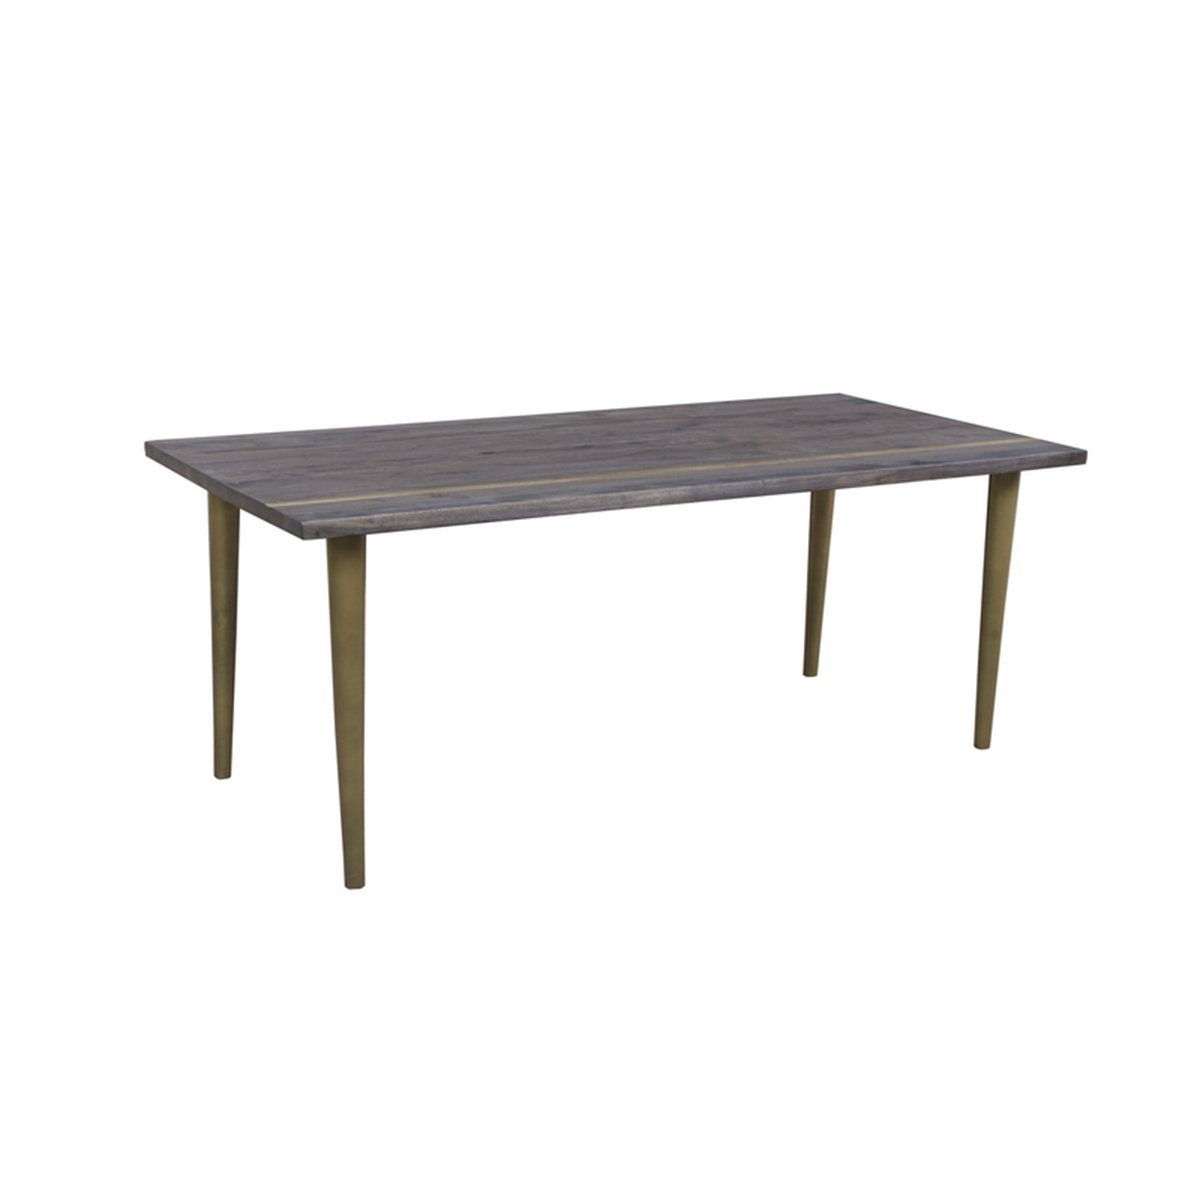 "Solid Acacia wood DINING TABLE 94"" - Showhome Furniture"